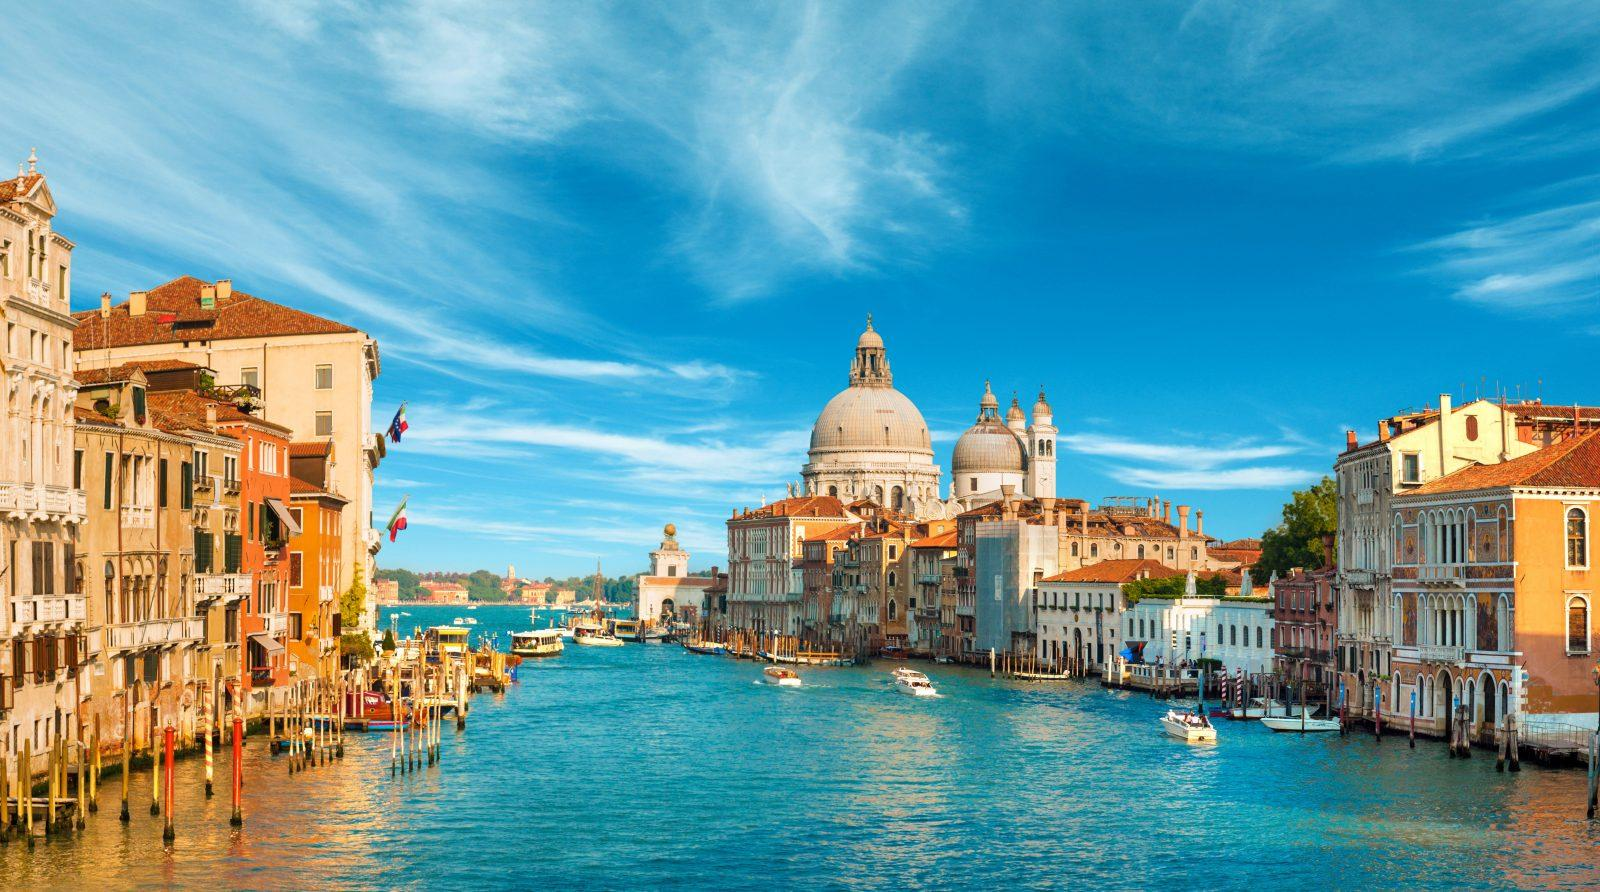 Visiting Venice: 6 Things You Shouldn't Miss